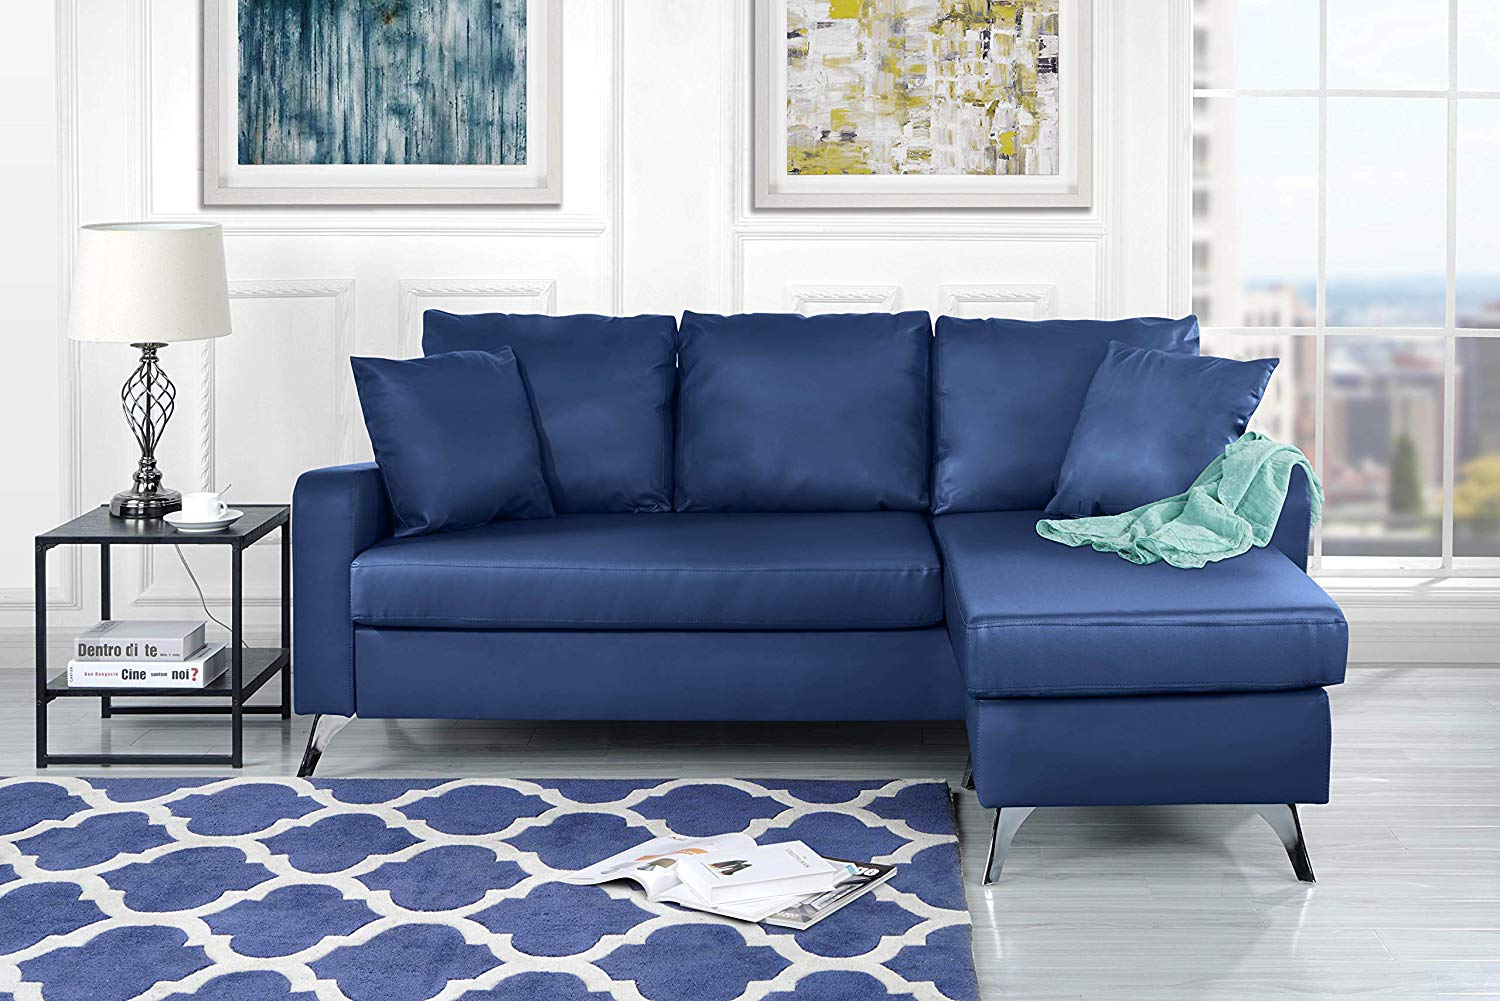 Divano Roma Furniture Bonded Leather Sectional Sofa - Small Space Configurable Couch (Blue)